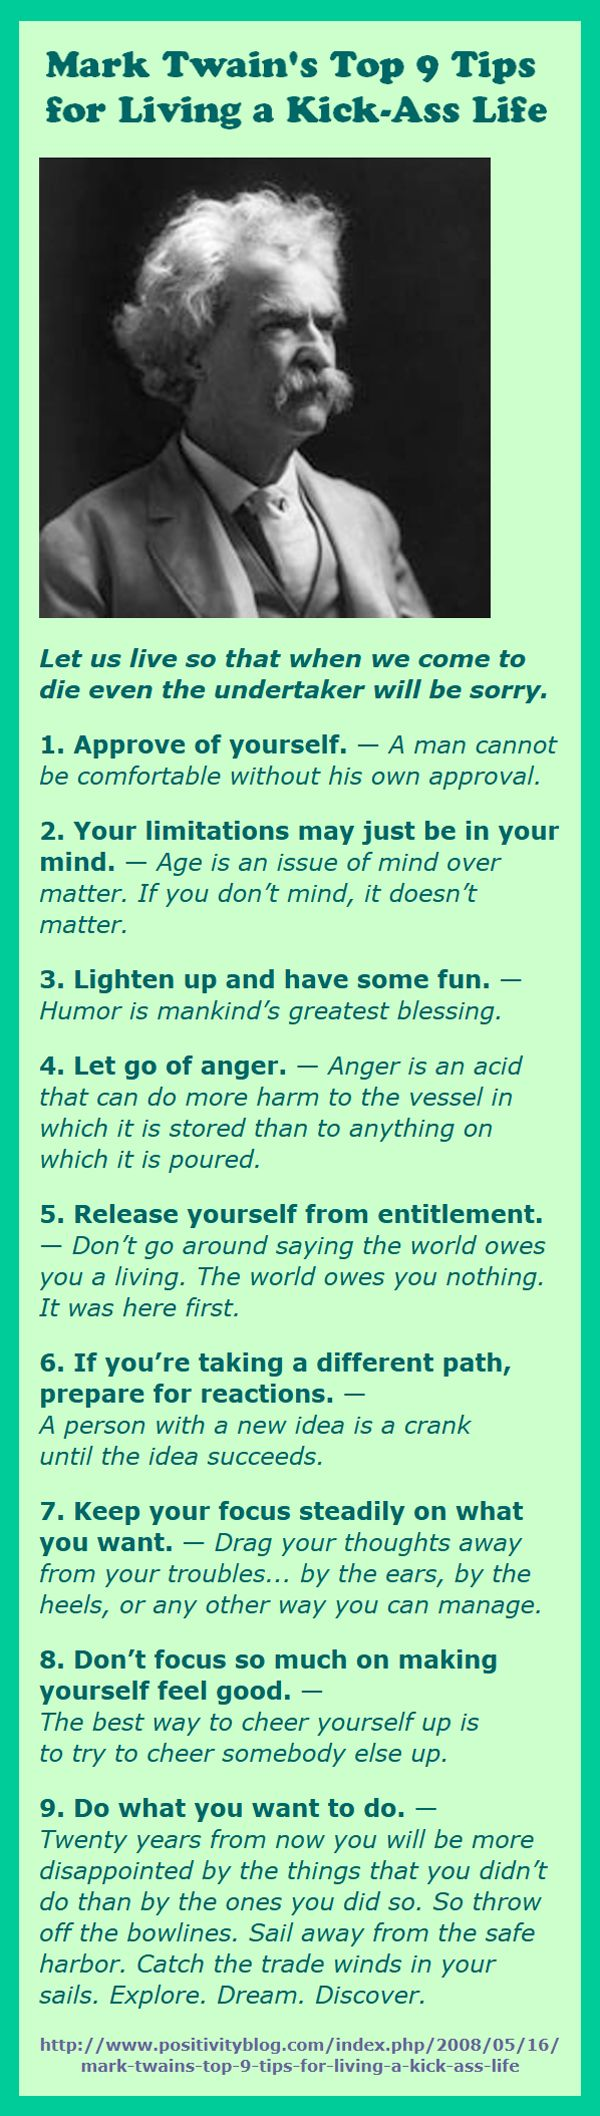 Mark Twain's Top 9 Tips for Living a Kick-Ass Life - It's time to have some fun. More